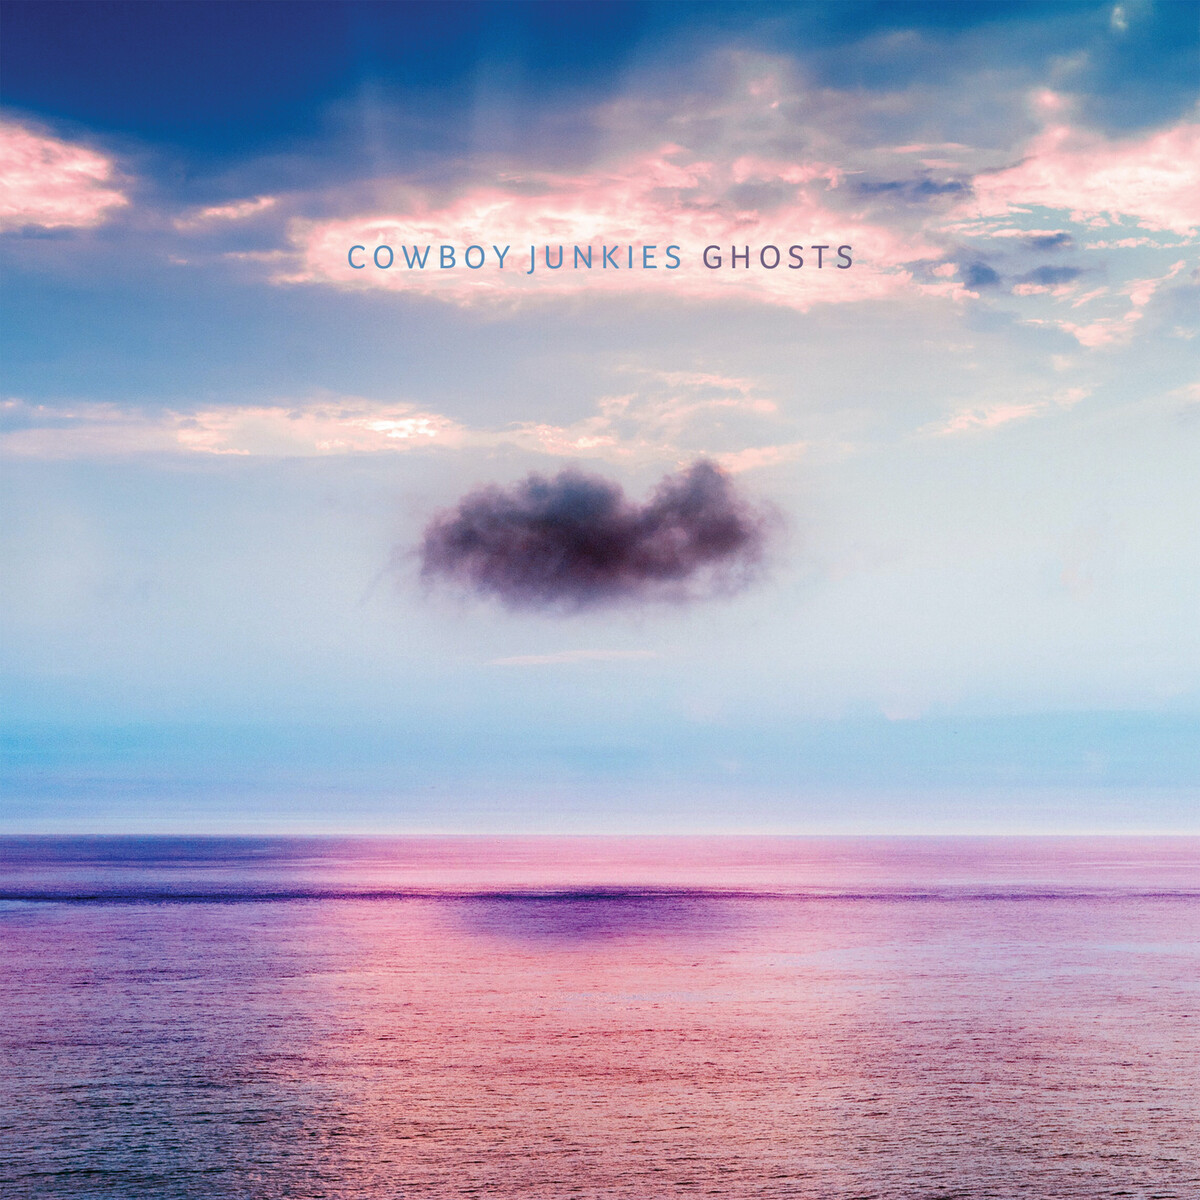 Ghosts by Cowboy Junkies